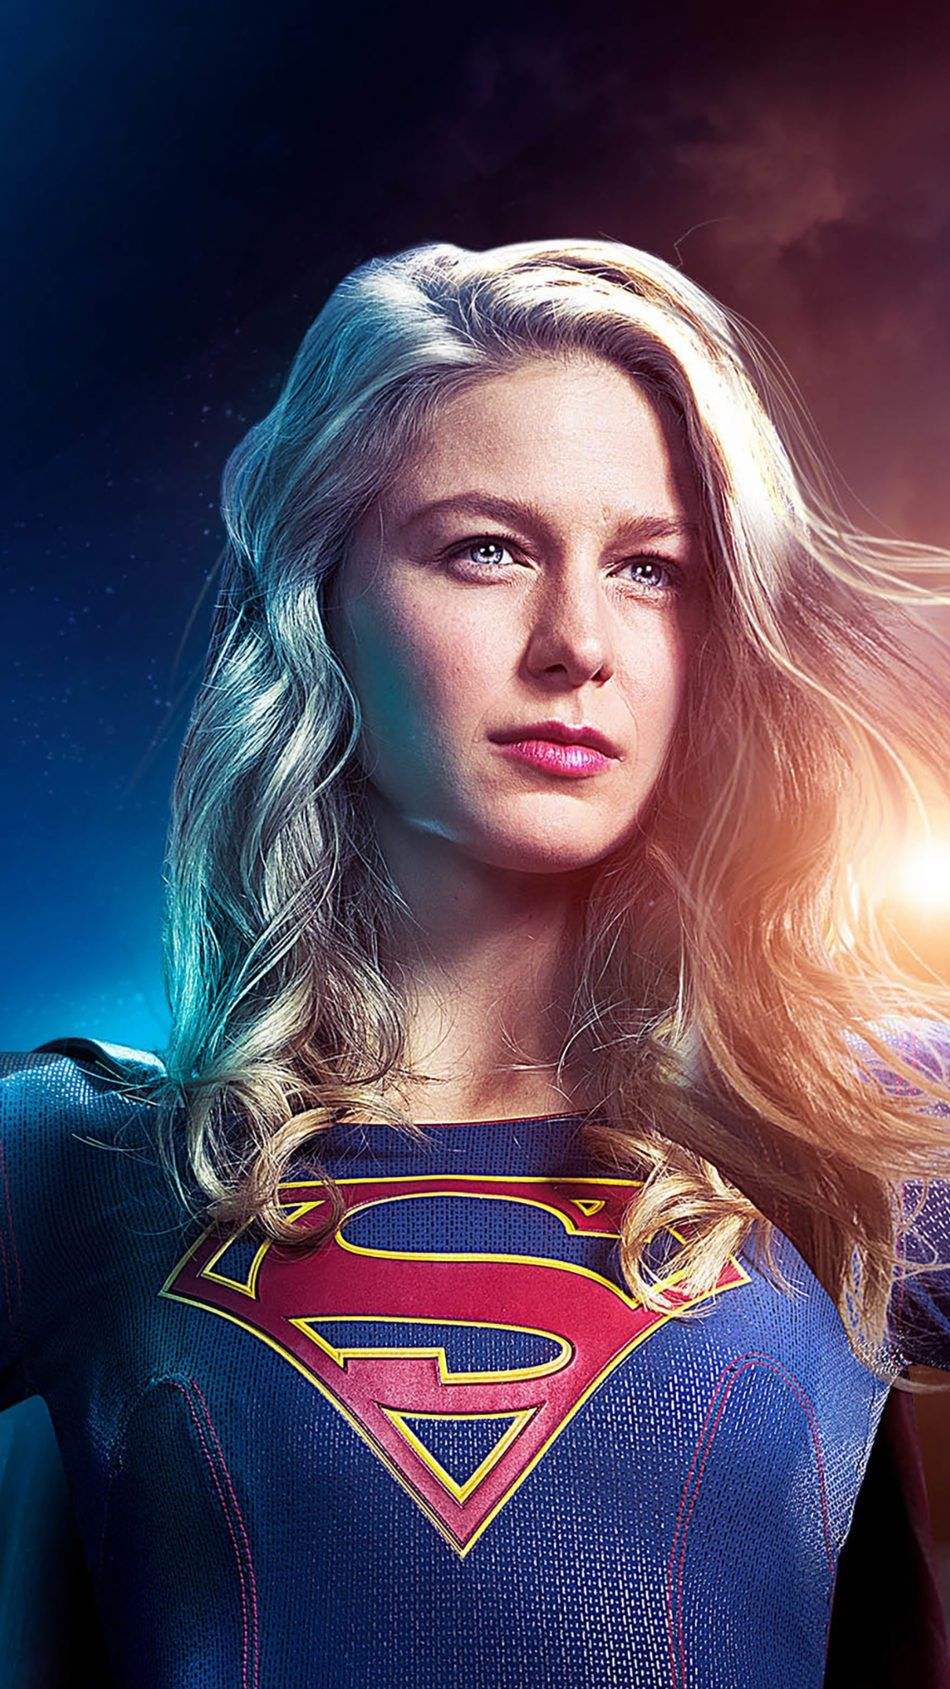 Melissa Benoist Supergirl Season 5 4k Ultra Hd Mobile Wallpaper In 2020 Supergirl Season Melissa Supergirl Supergirl Pictures